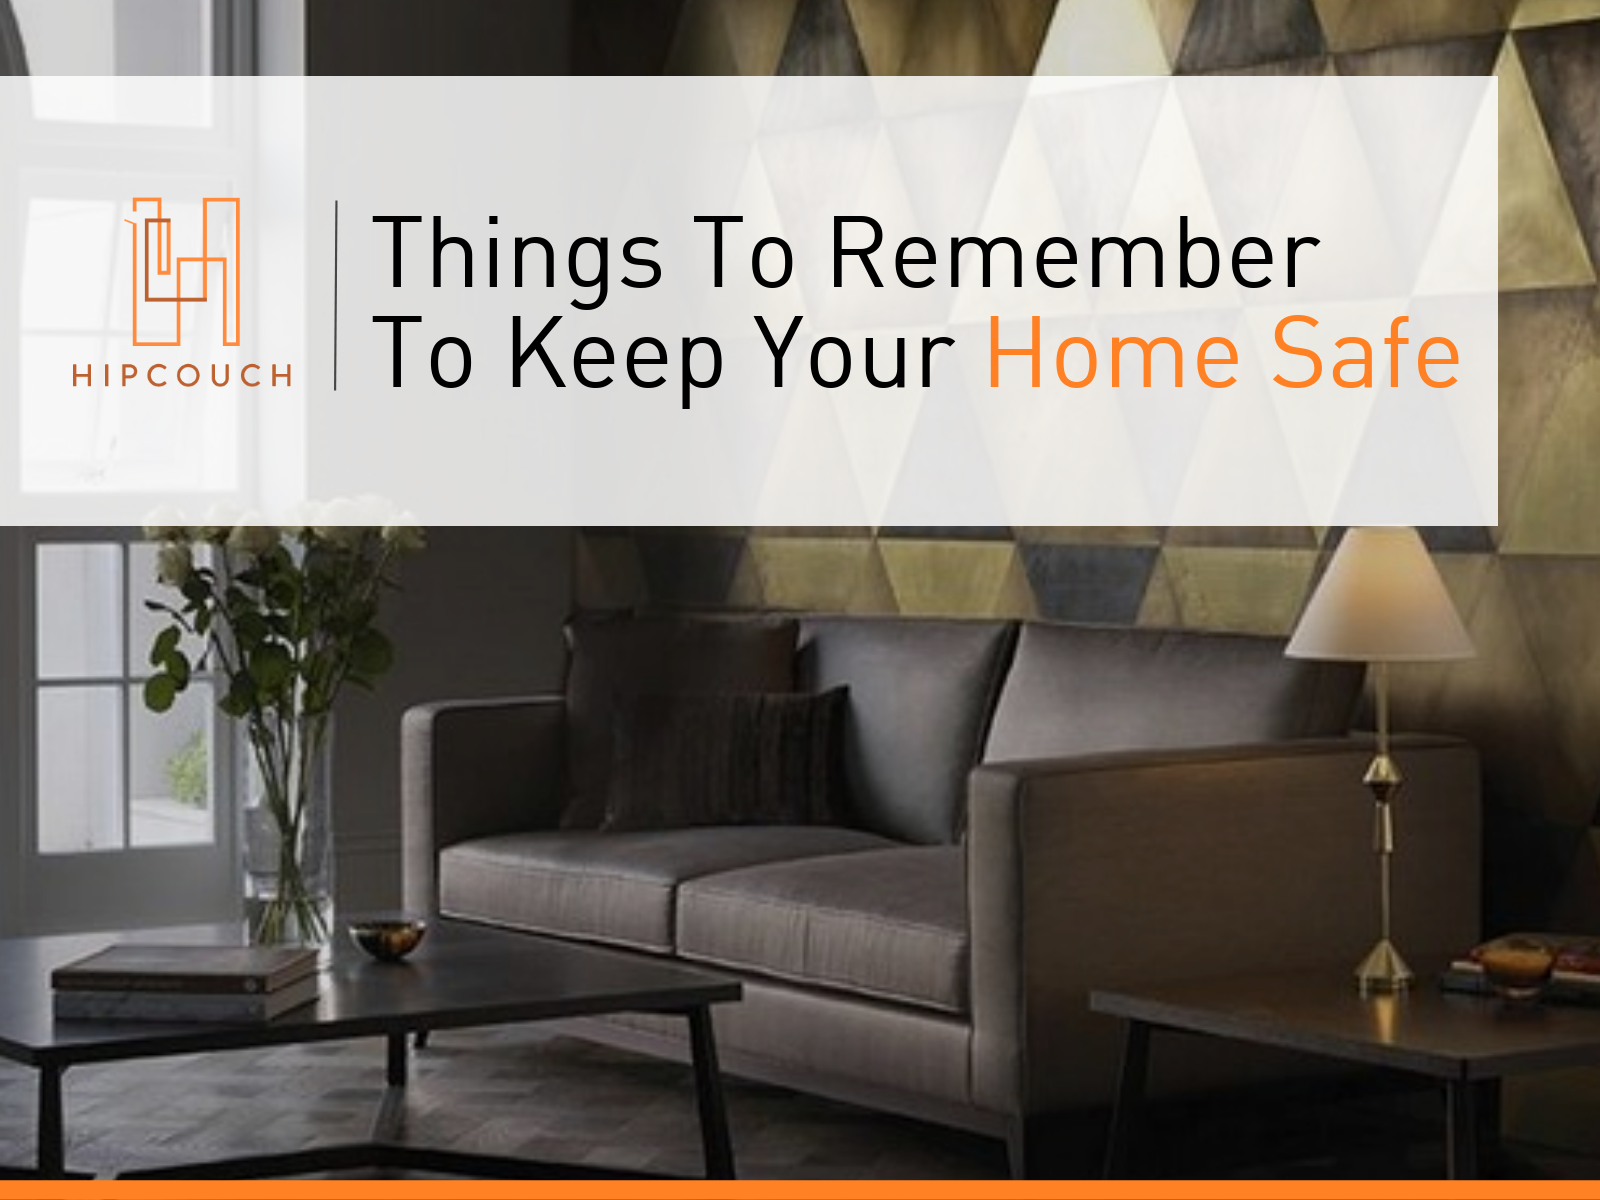 Home Safety 101: Things To Keep In Mind For A Protected Abode